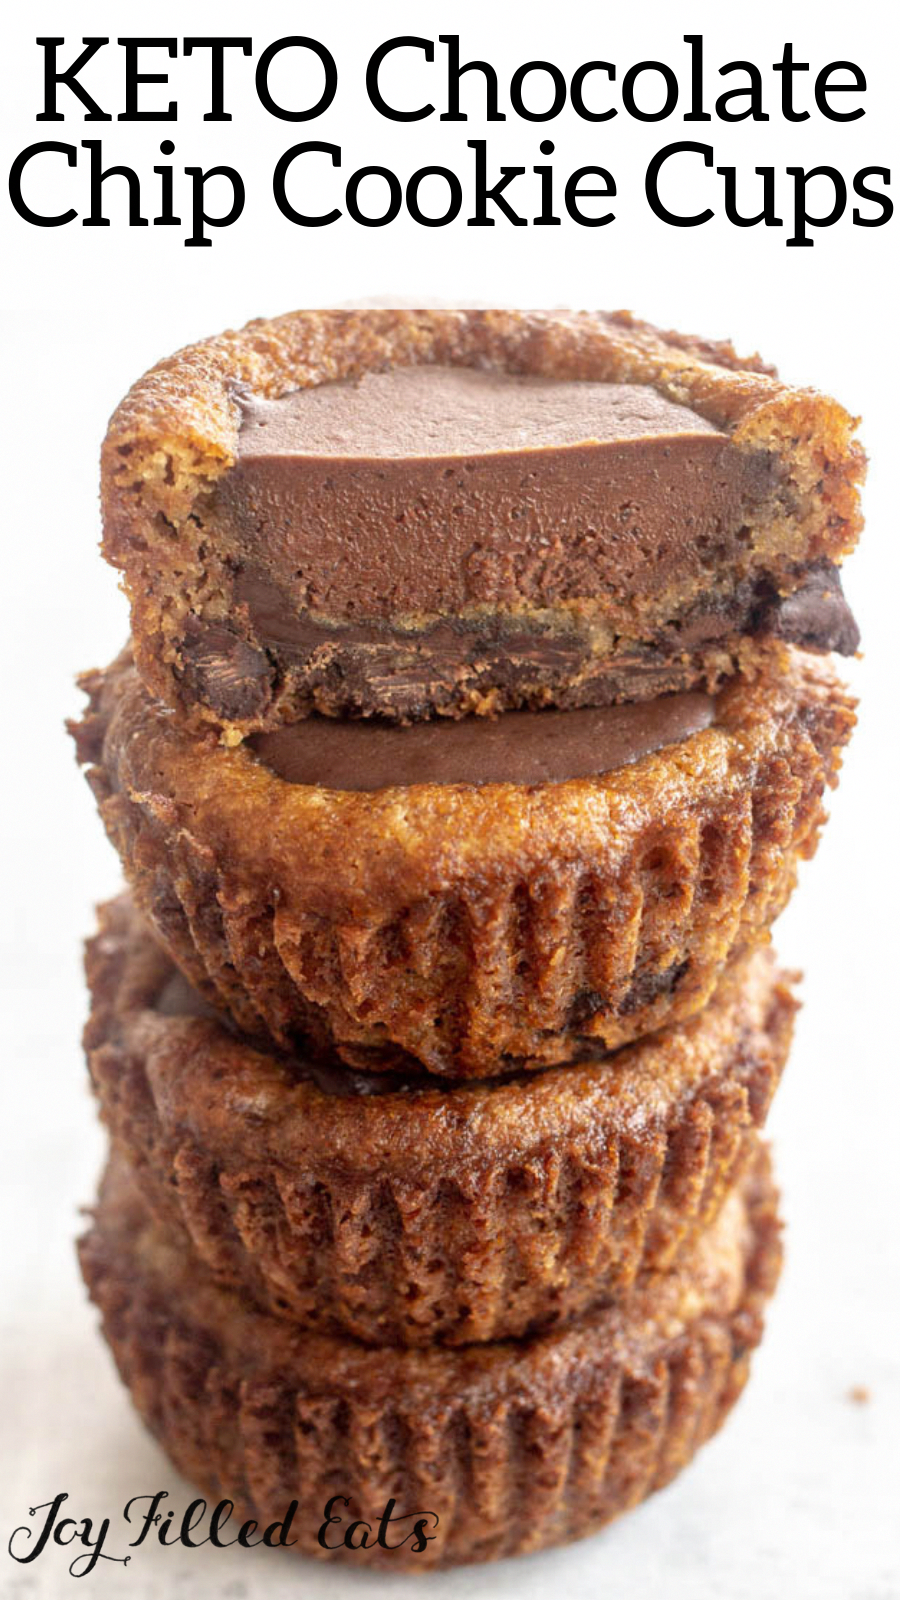 Chocolate Chip Cookie Cups with Ganache Filling - low carb, gluten-free, grain-free, THM S - these are a fun variation on a classic cookie. Simply bake chocolate chip cookie dough in a muffin tin, make a well, and fill with rich chocolate ganache for a decadent treat.